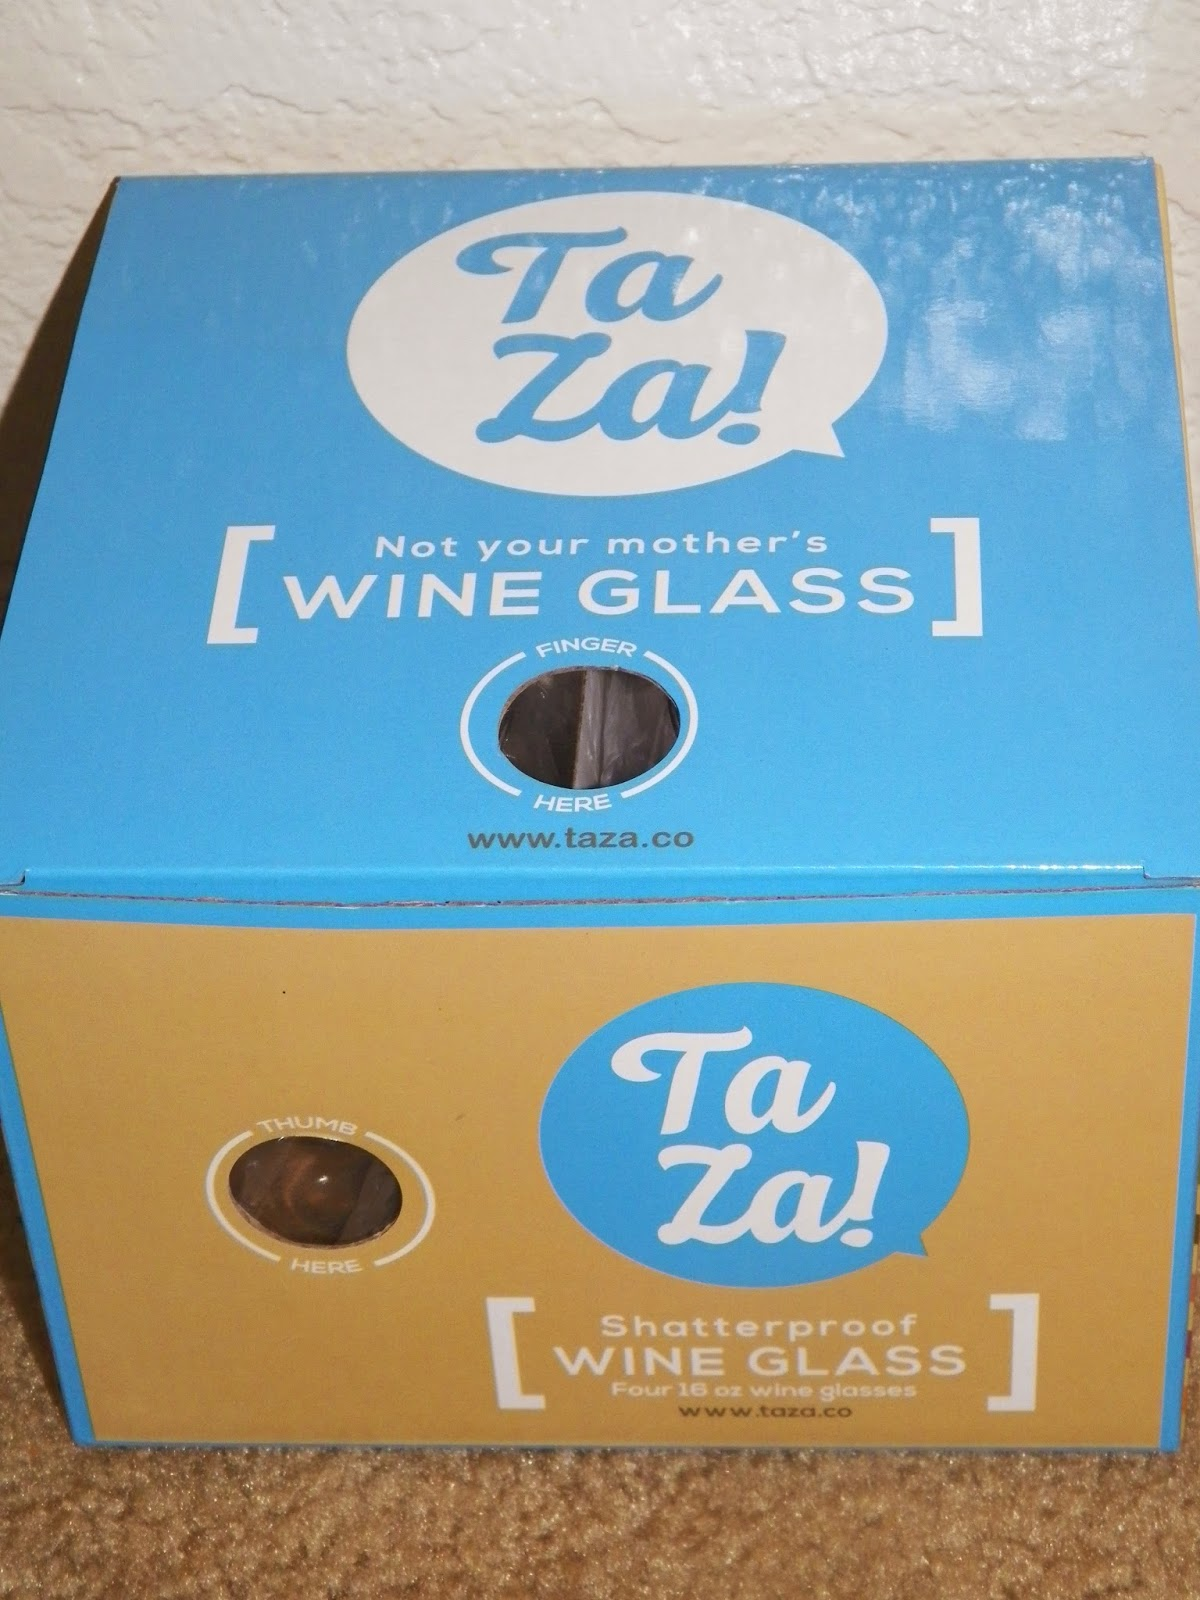 TaZa!WineGlass.jpg